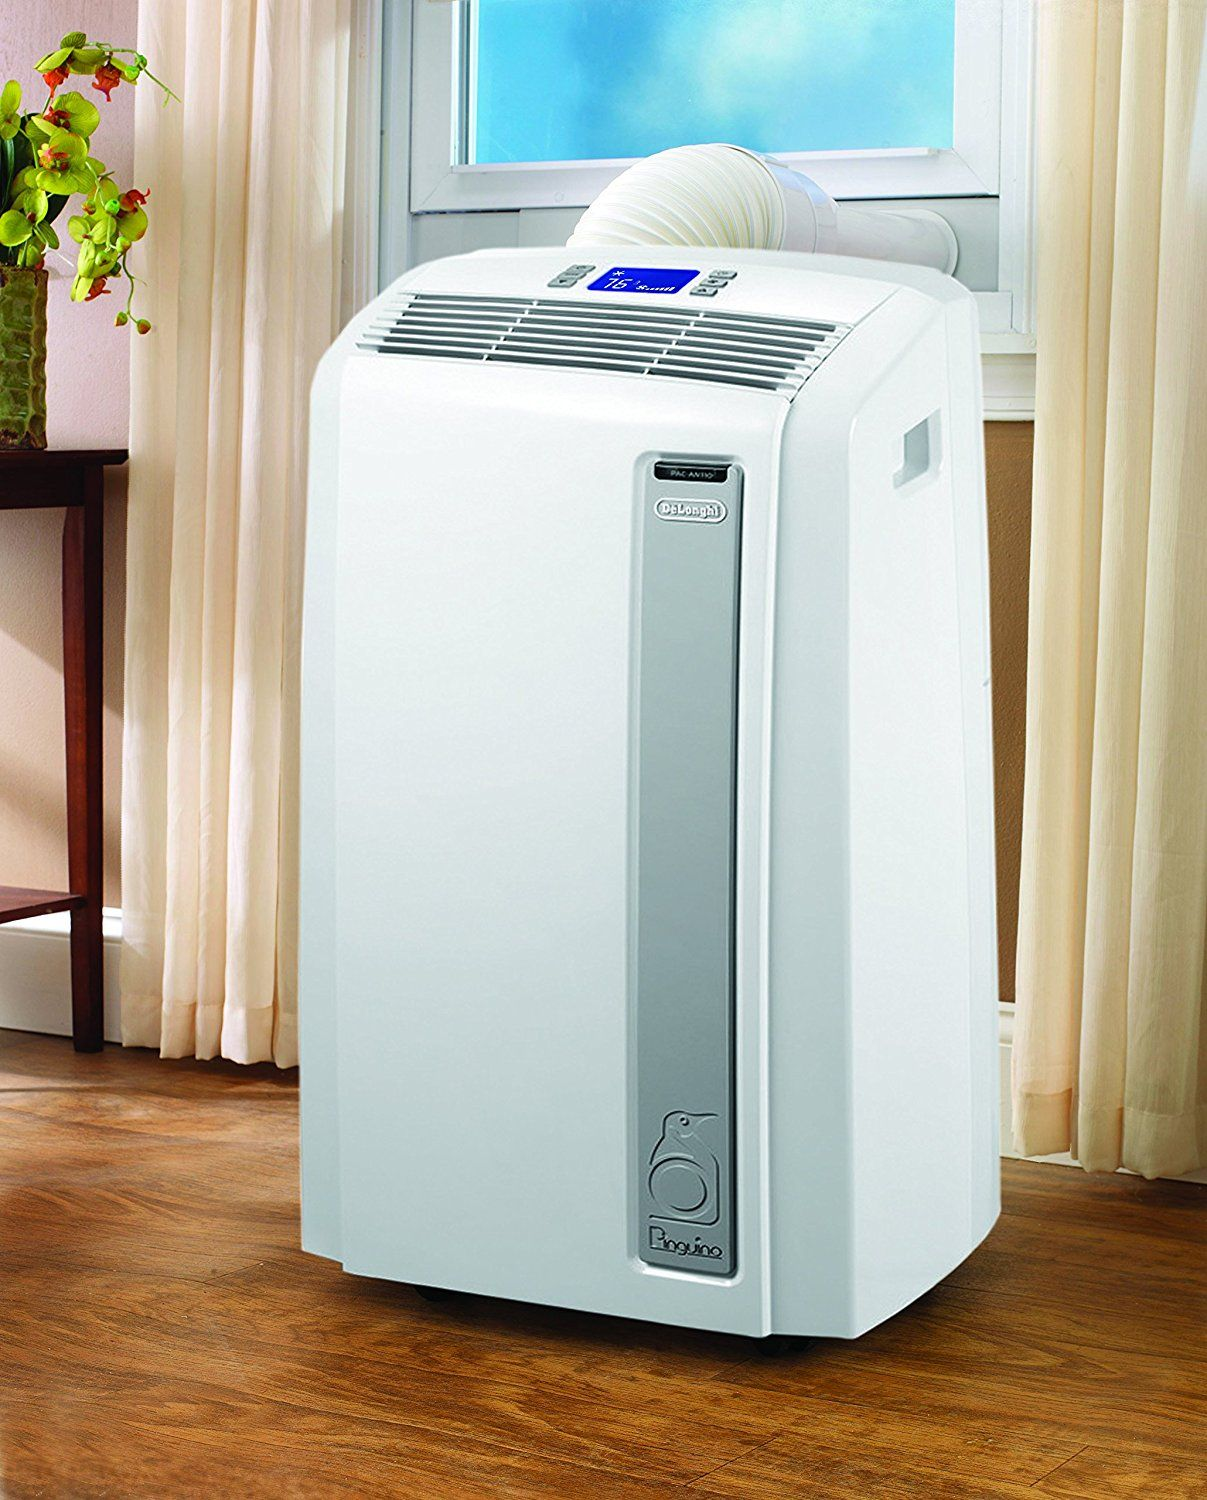 Where Do You Place a Dehumidifier for the Best Results